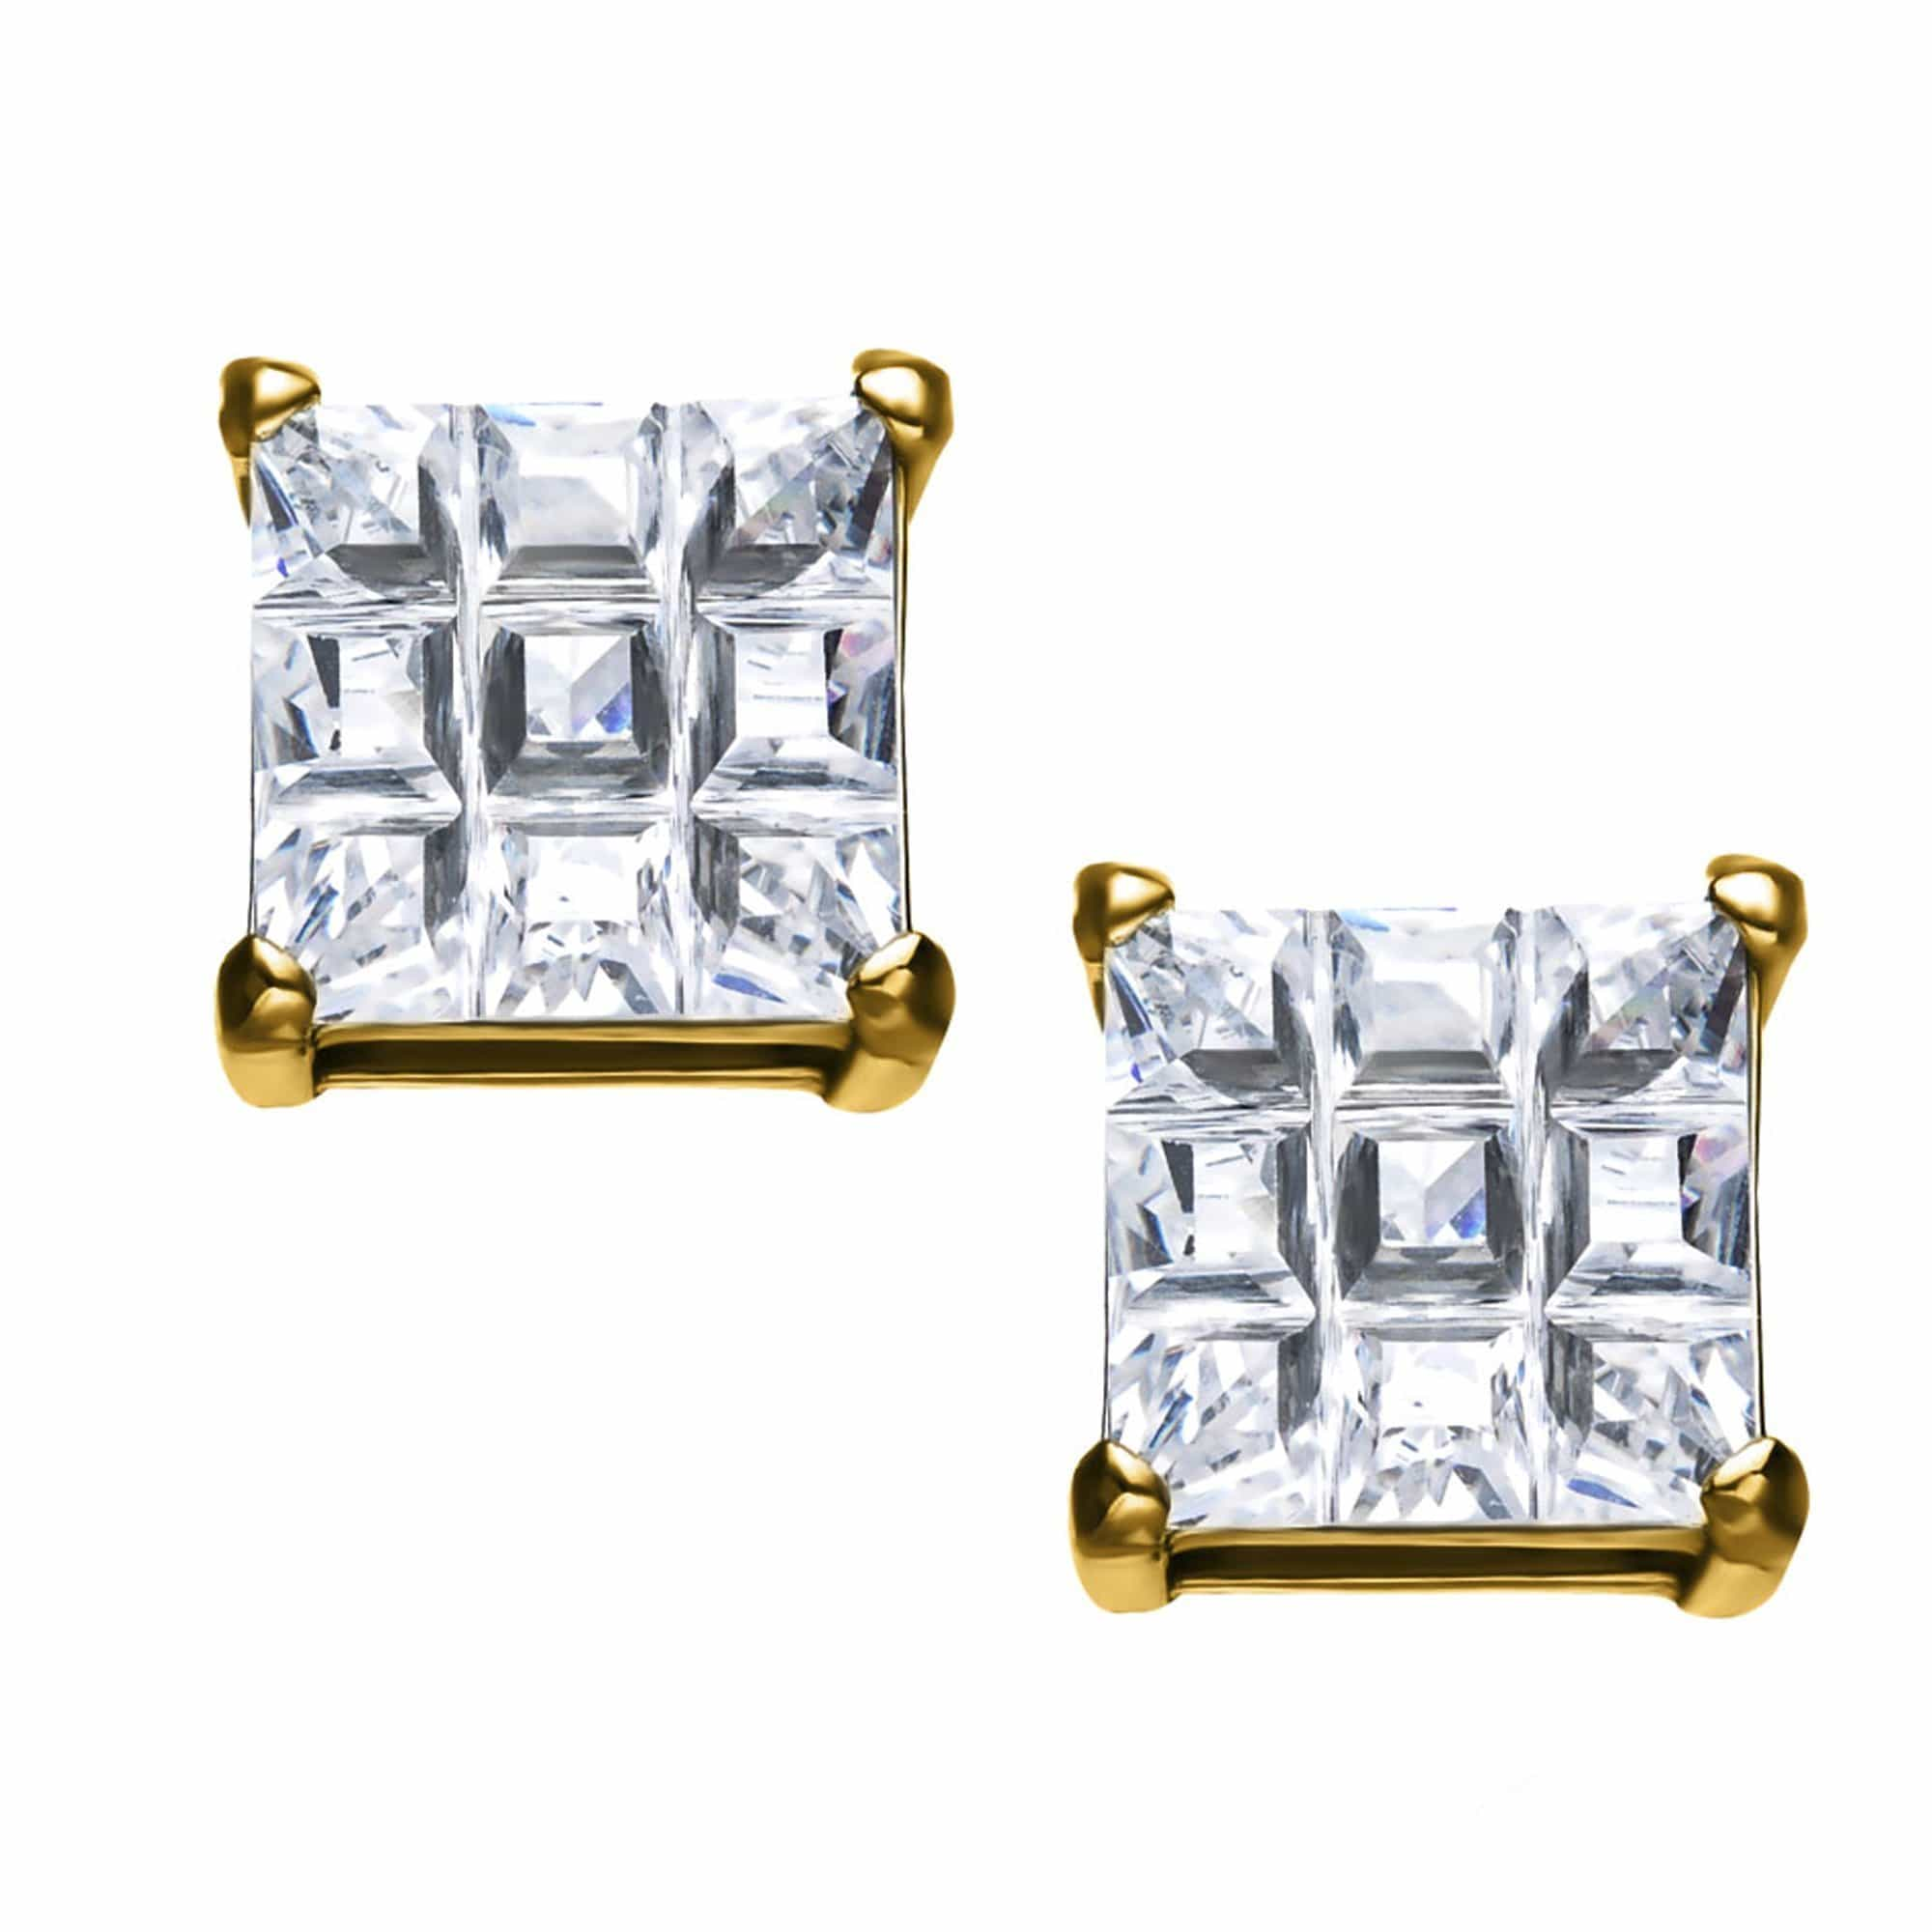 Gold Stainless Steel Invisible Setting Look Square CZ Ear Studs